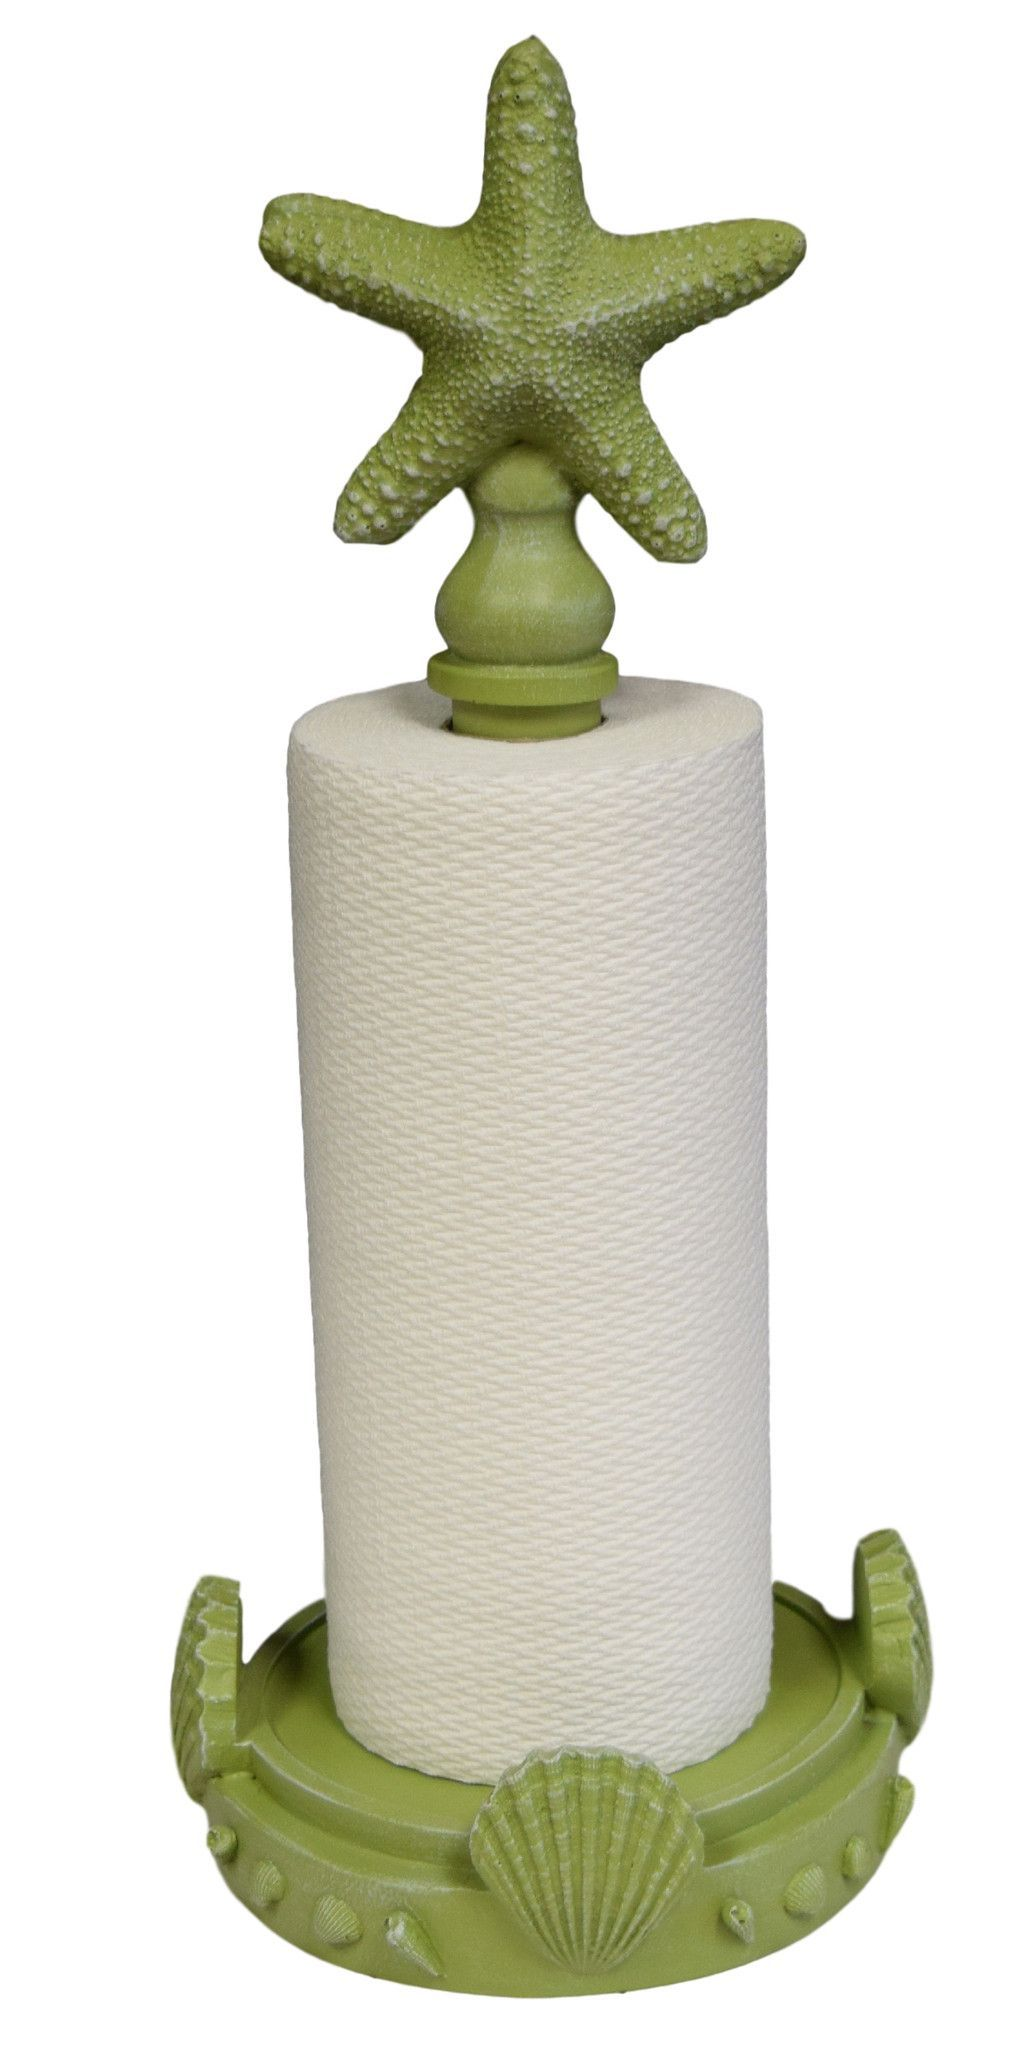 Coastal Paper Towel Holder Amazing Starfish Top Standing Paper Towel Holder In Coastal Green Color Design Decoration